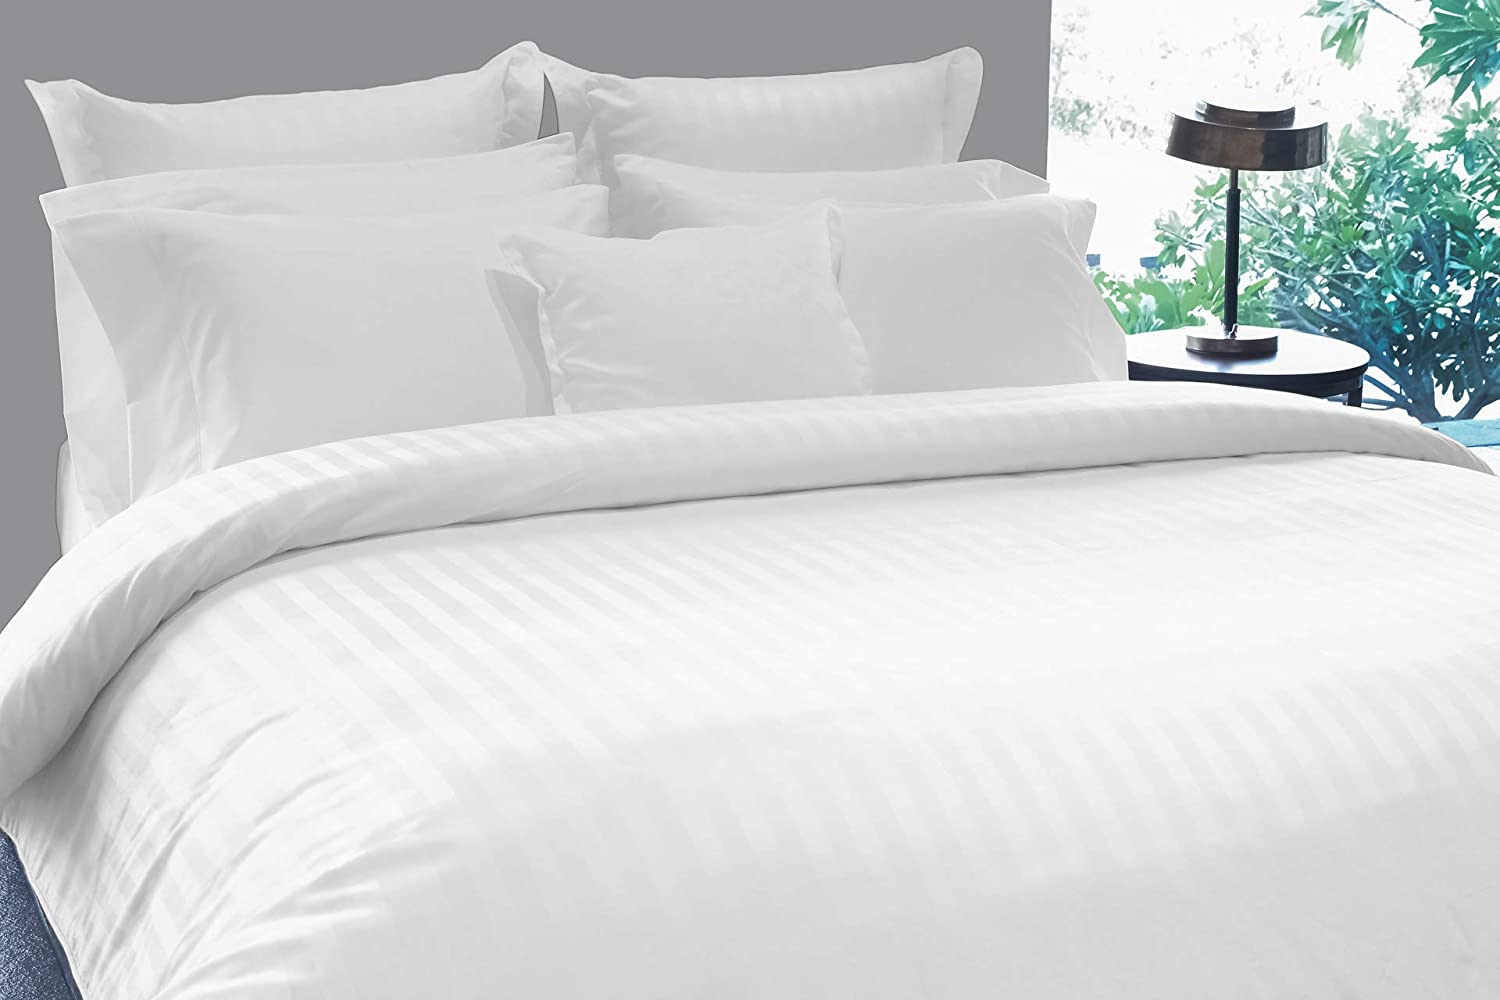 TRANQUIL NIGHTS - 500 Thread Count 100% Supima Cotton Bed Sheet Set